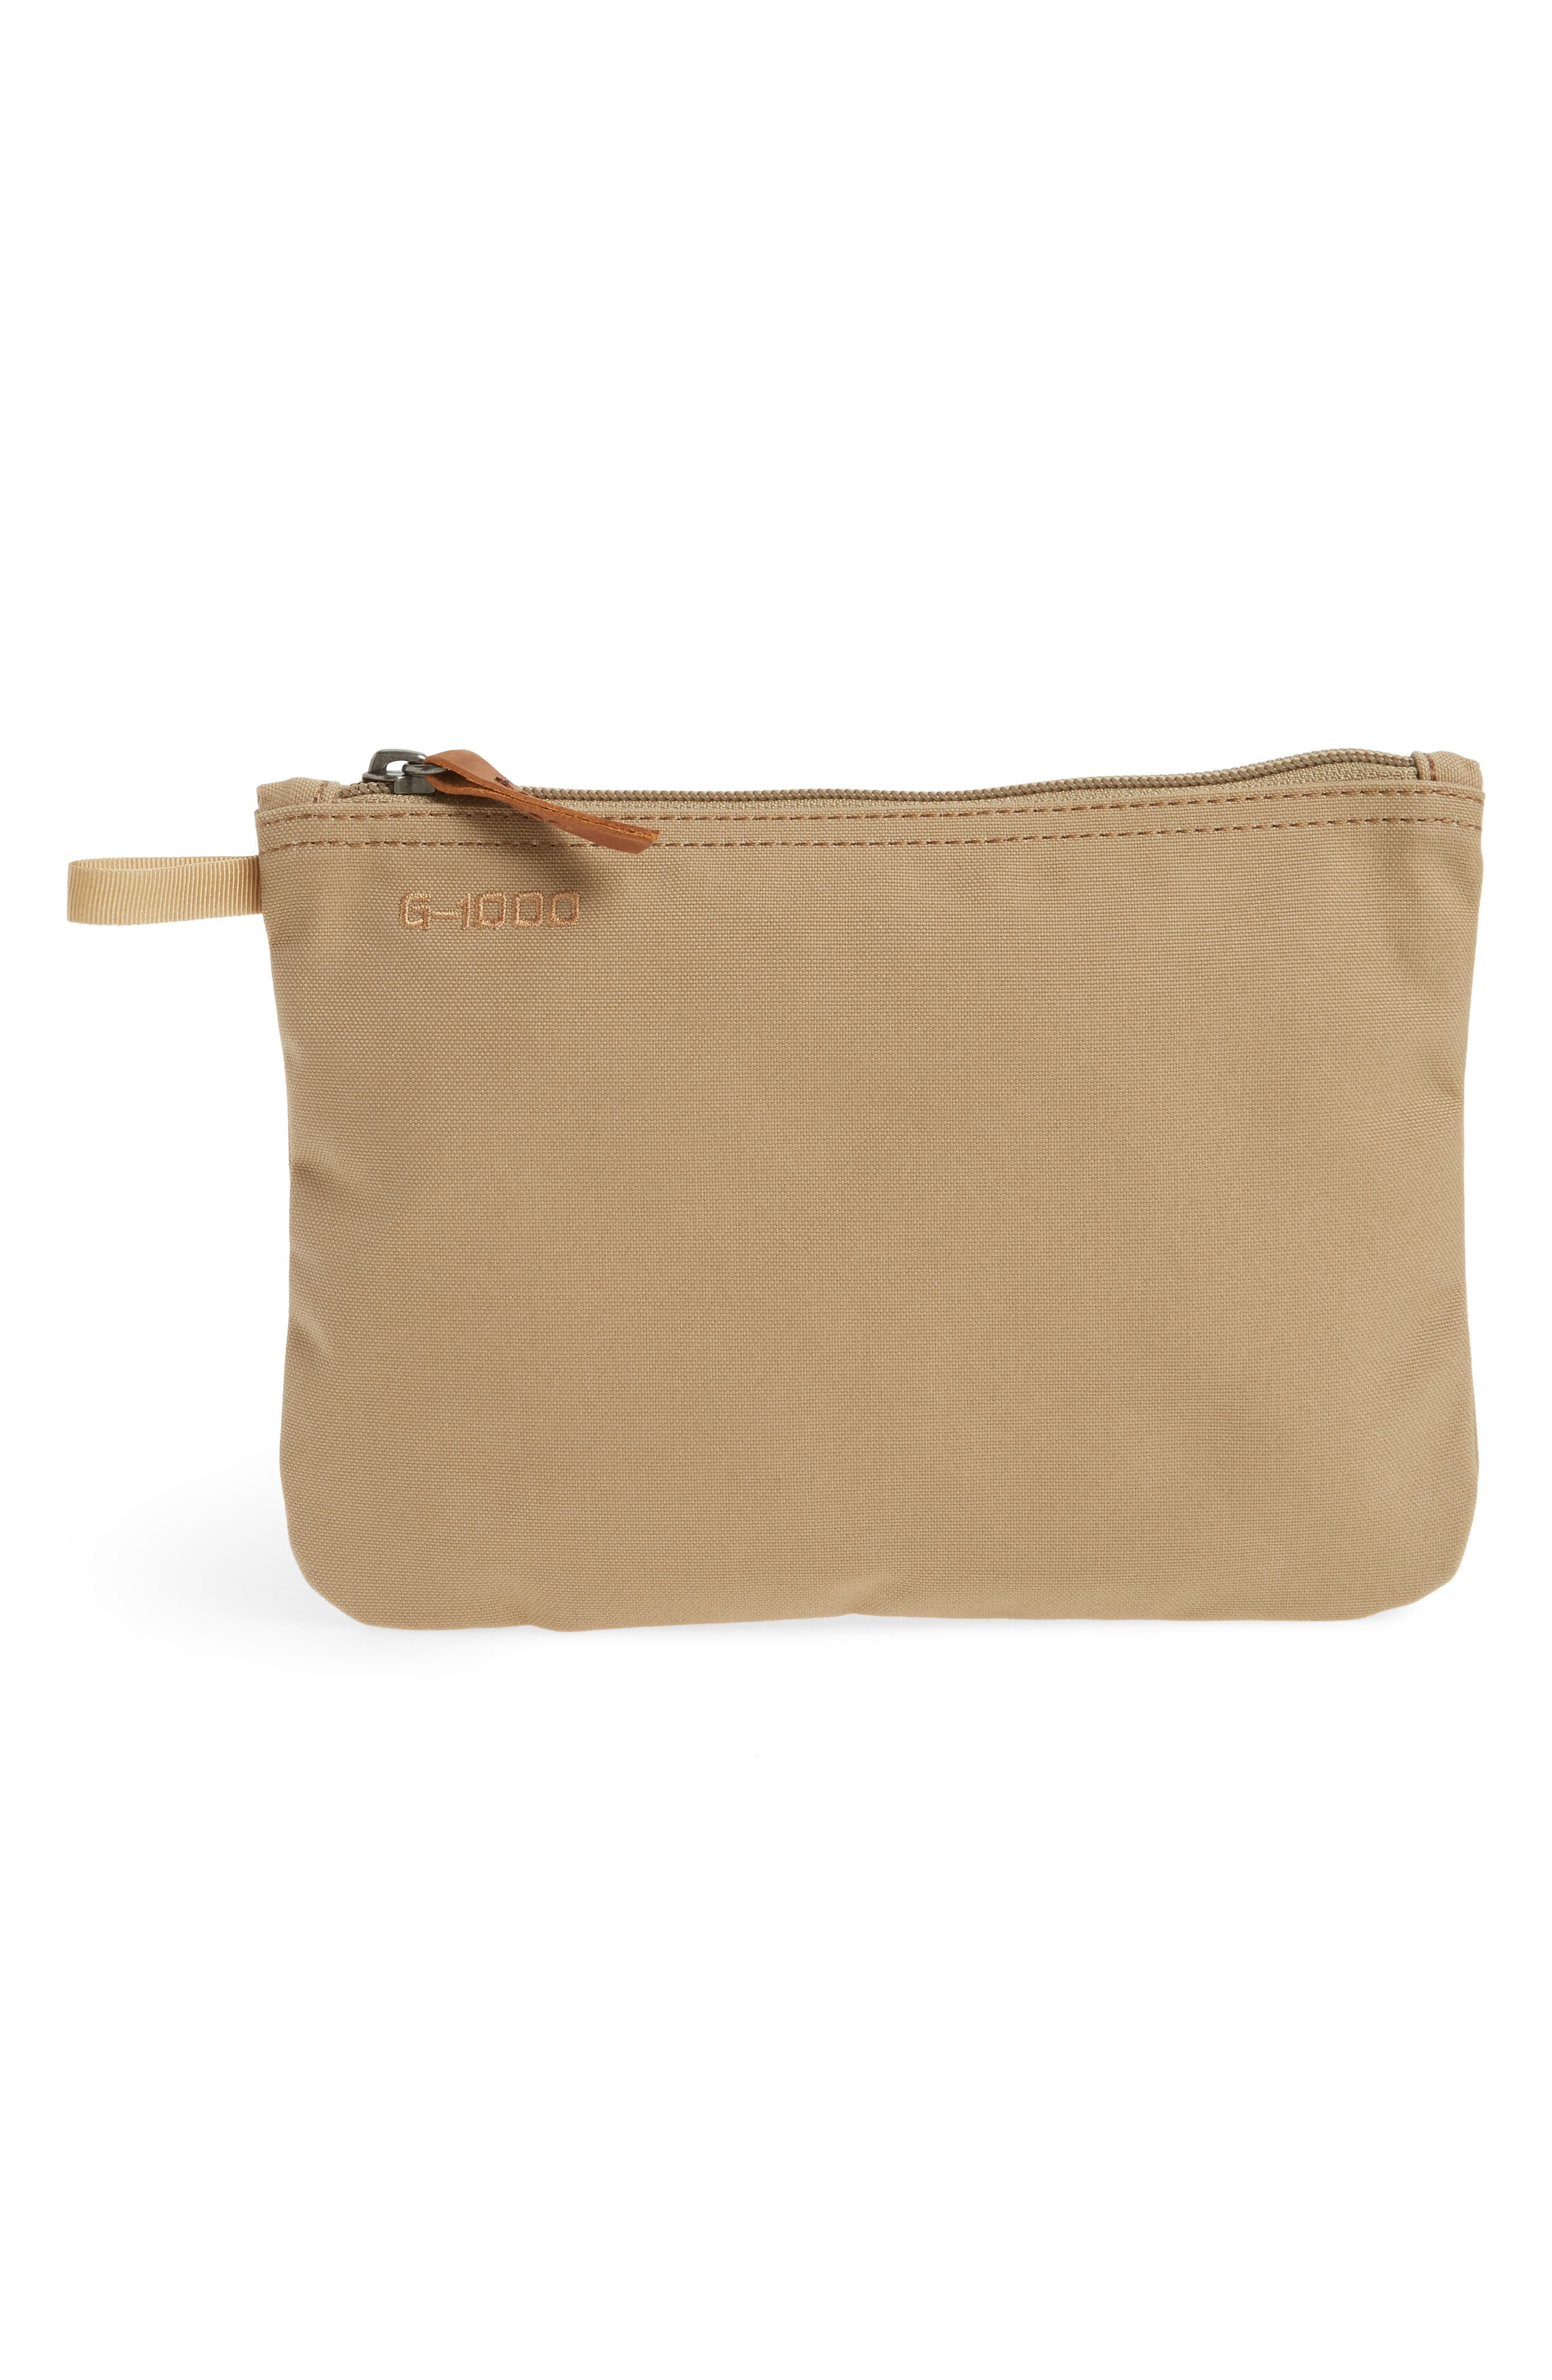 Gear Water-Resistant Pocket Pouch,                             Main thumbnail 1, color,                             Sand